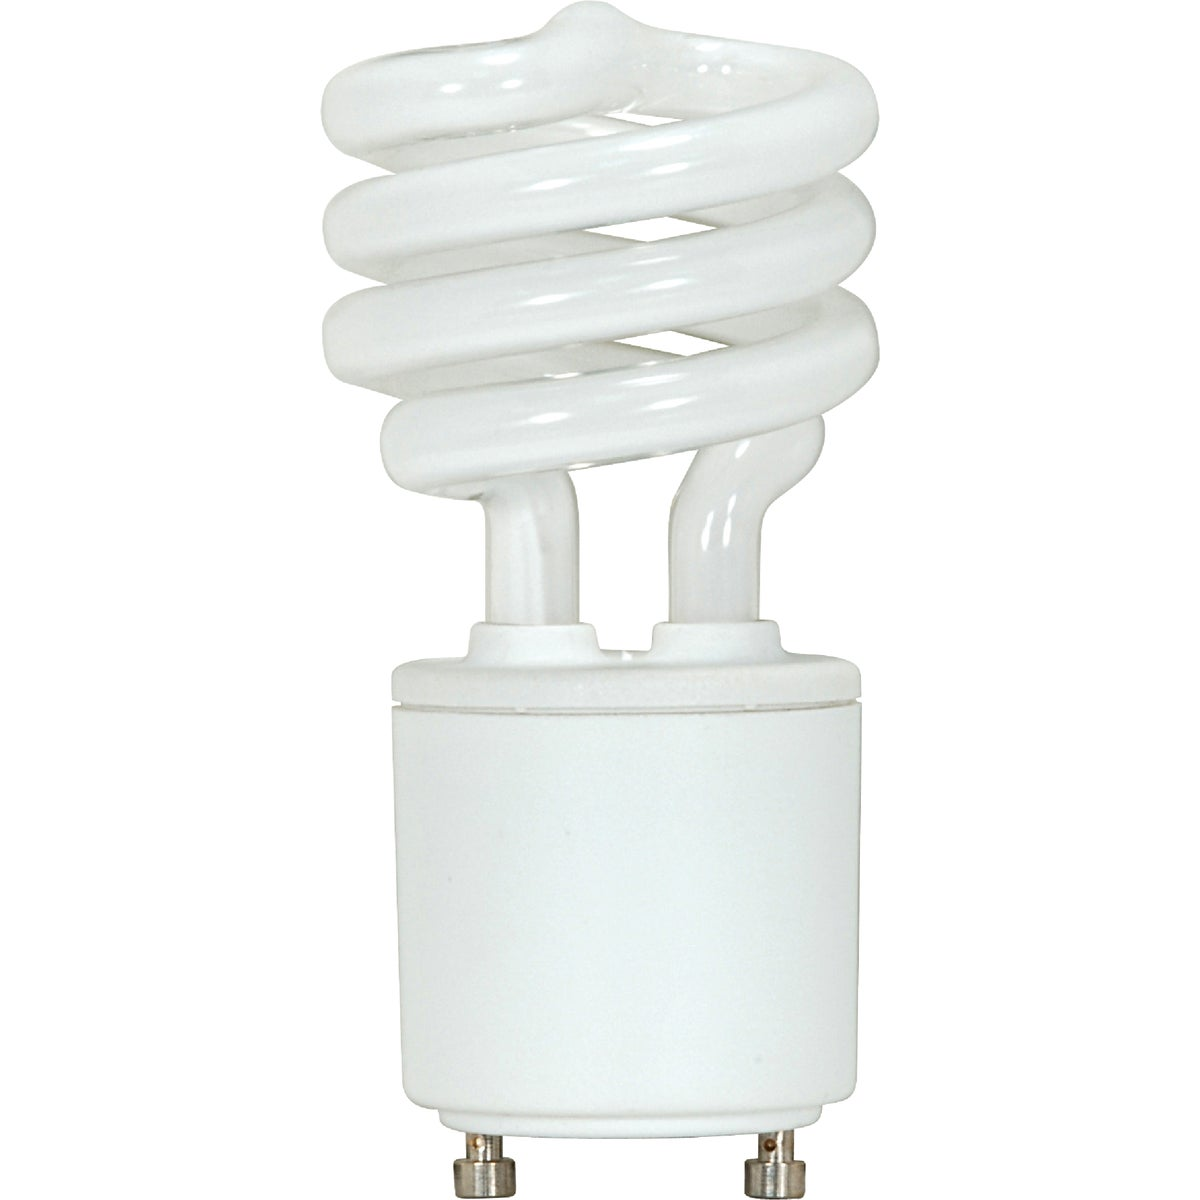 GU24 13W MINI TWIST BULB - 37990 by Westinghouse Lightng